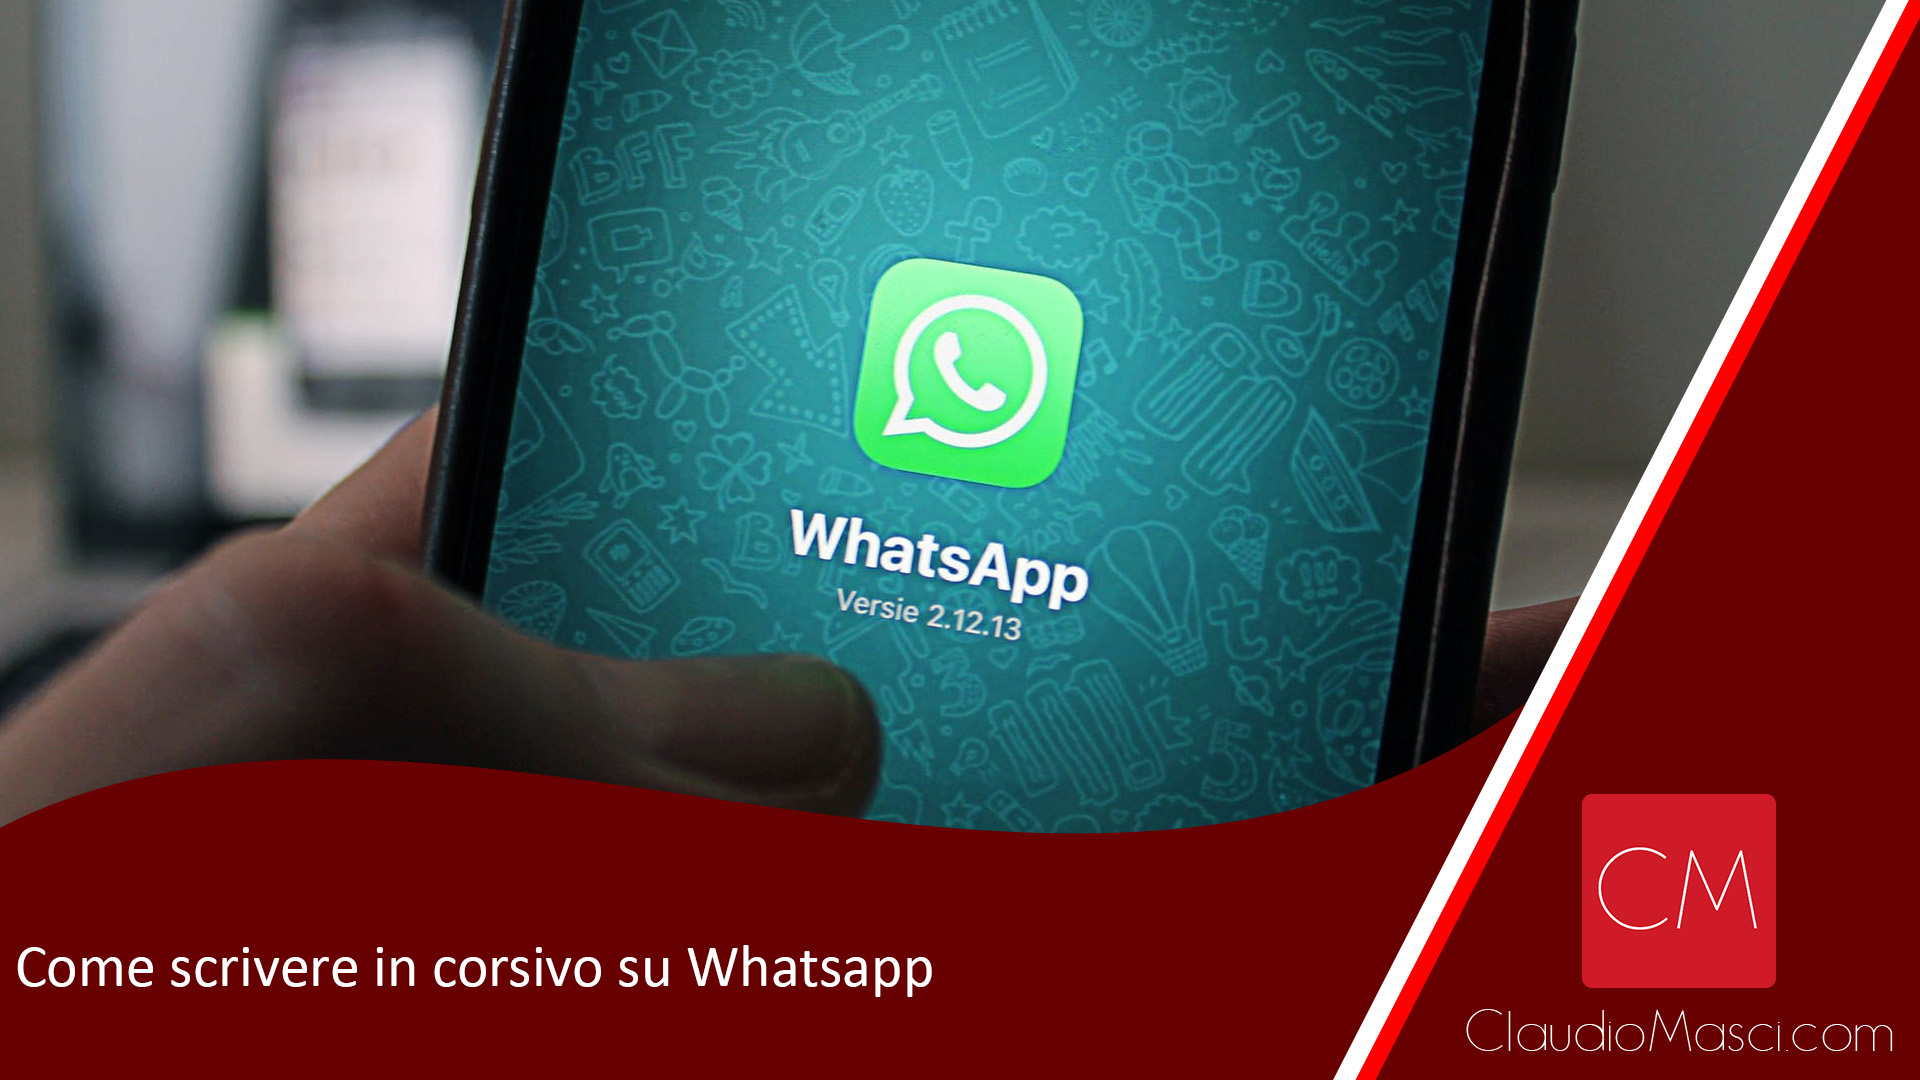 Come scrivere in corsivo su Whatsapp